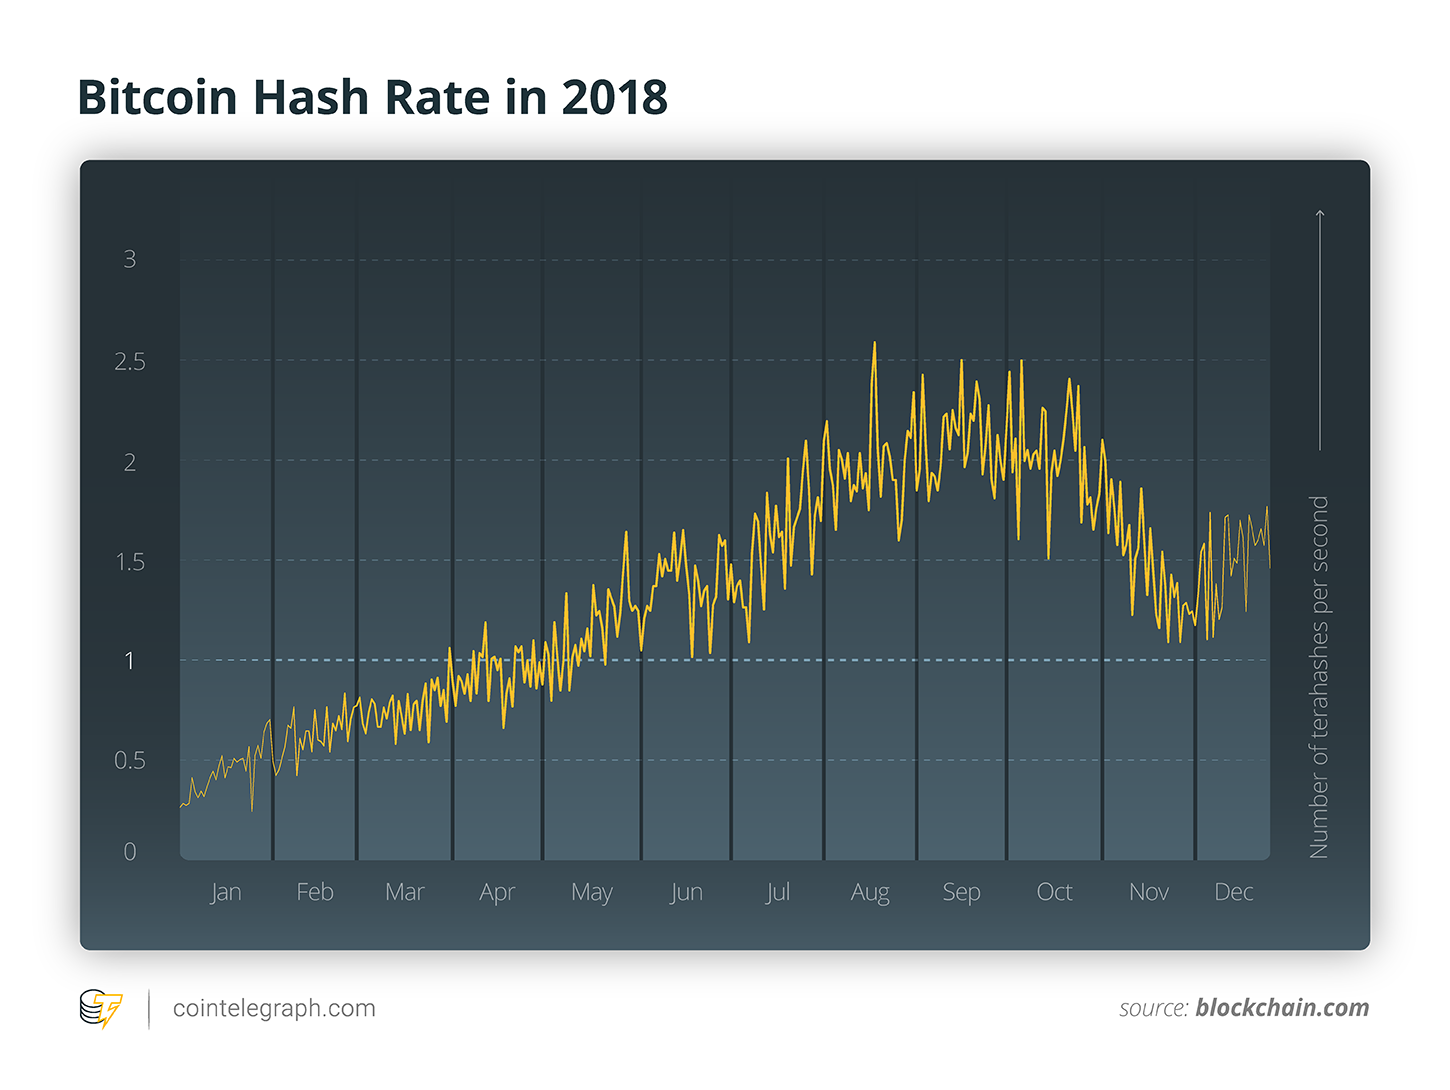 Bitcoin Hash Rate in 2018